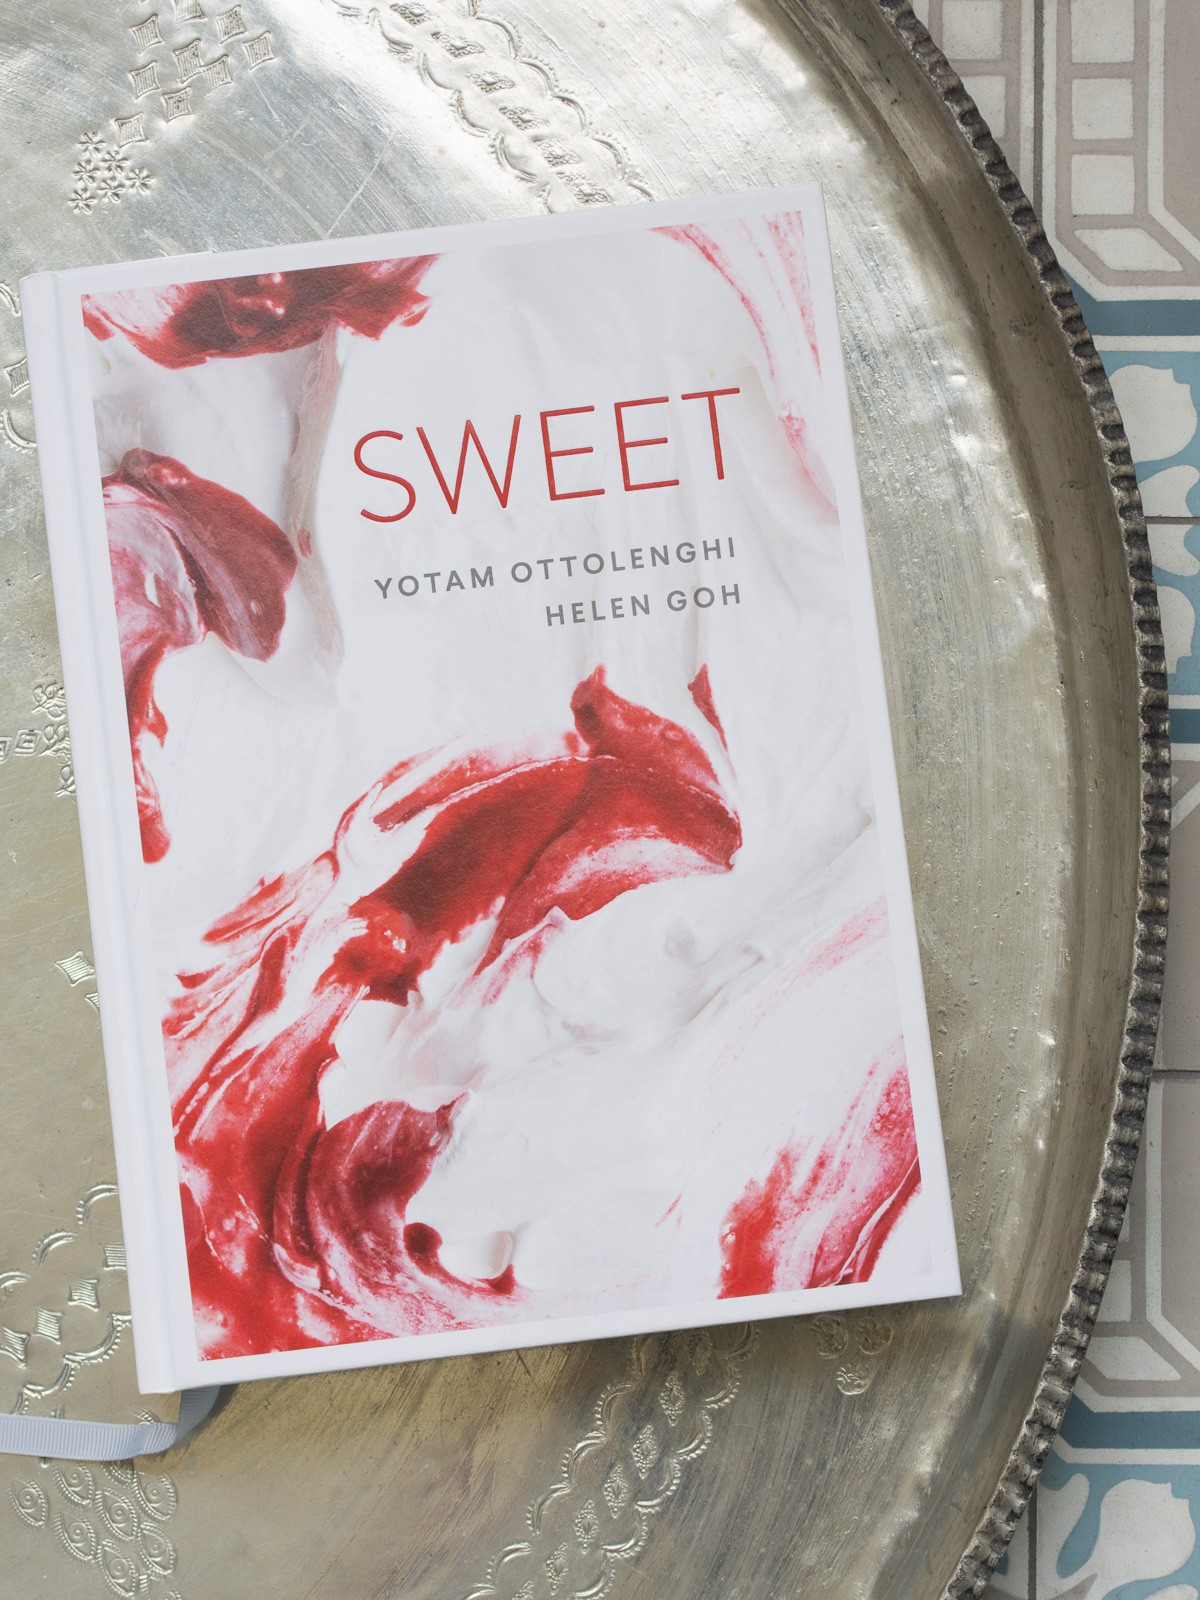 Sweet - Yotam Ottolenghi - hardcover